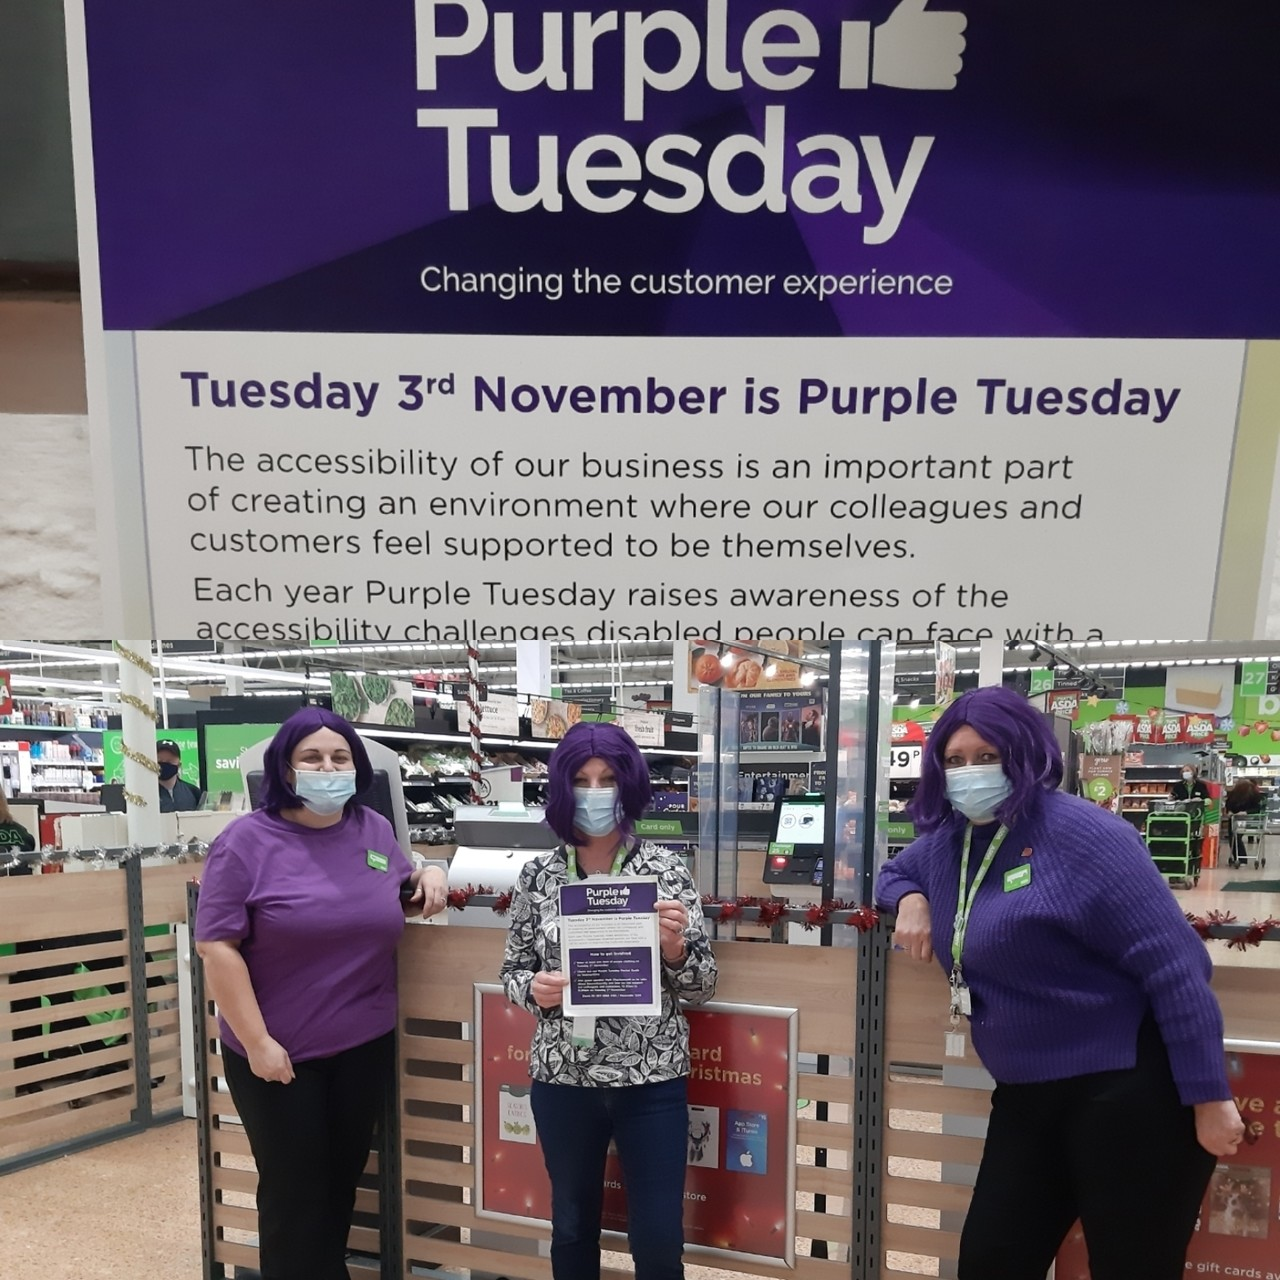 Spreading the word about Purple Tuesday | Asda Middlesbrough